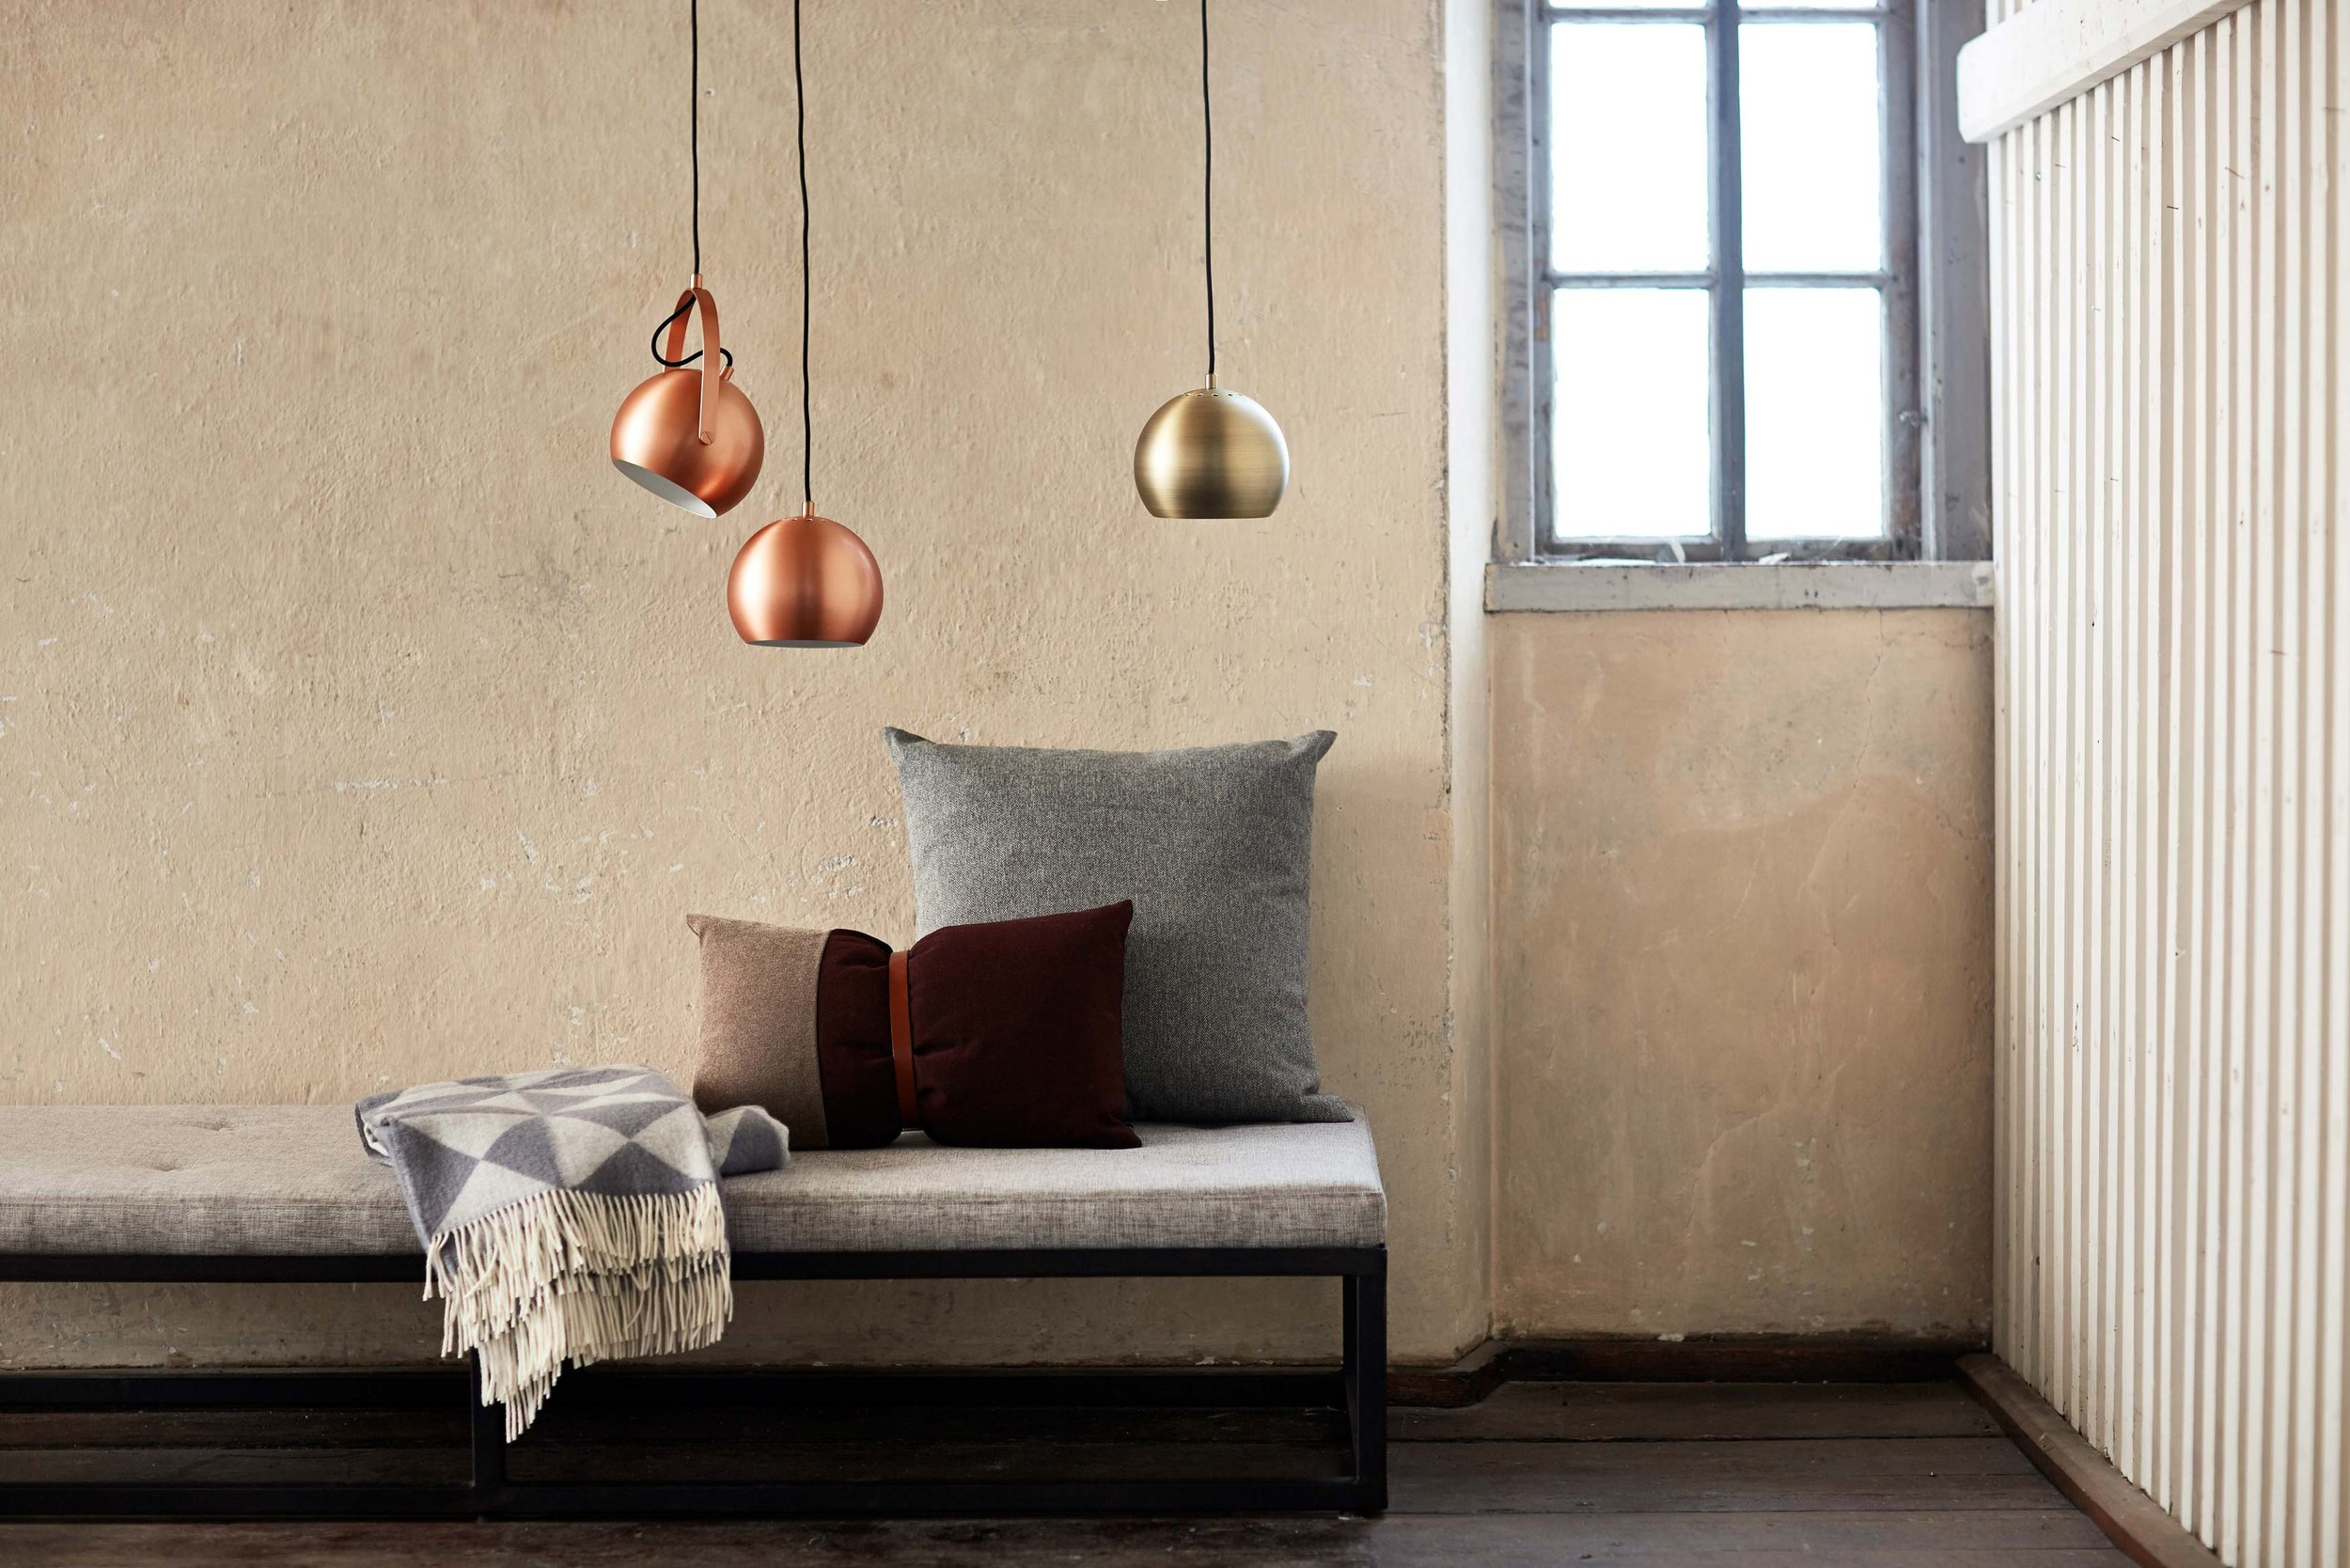 Ball-pendant-with-handle-brushed-copper-+-Ball-pendants-18-cm-antique-brass-+-brushed-copper---lifestyle-arsenalgaarden.jpg